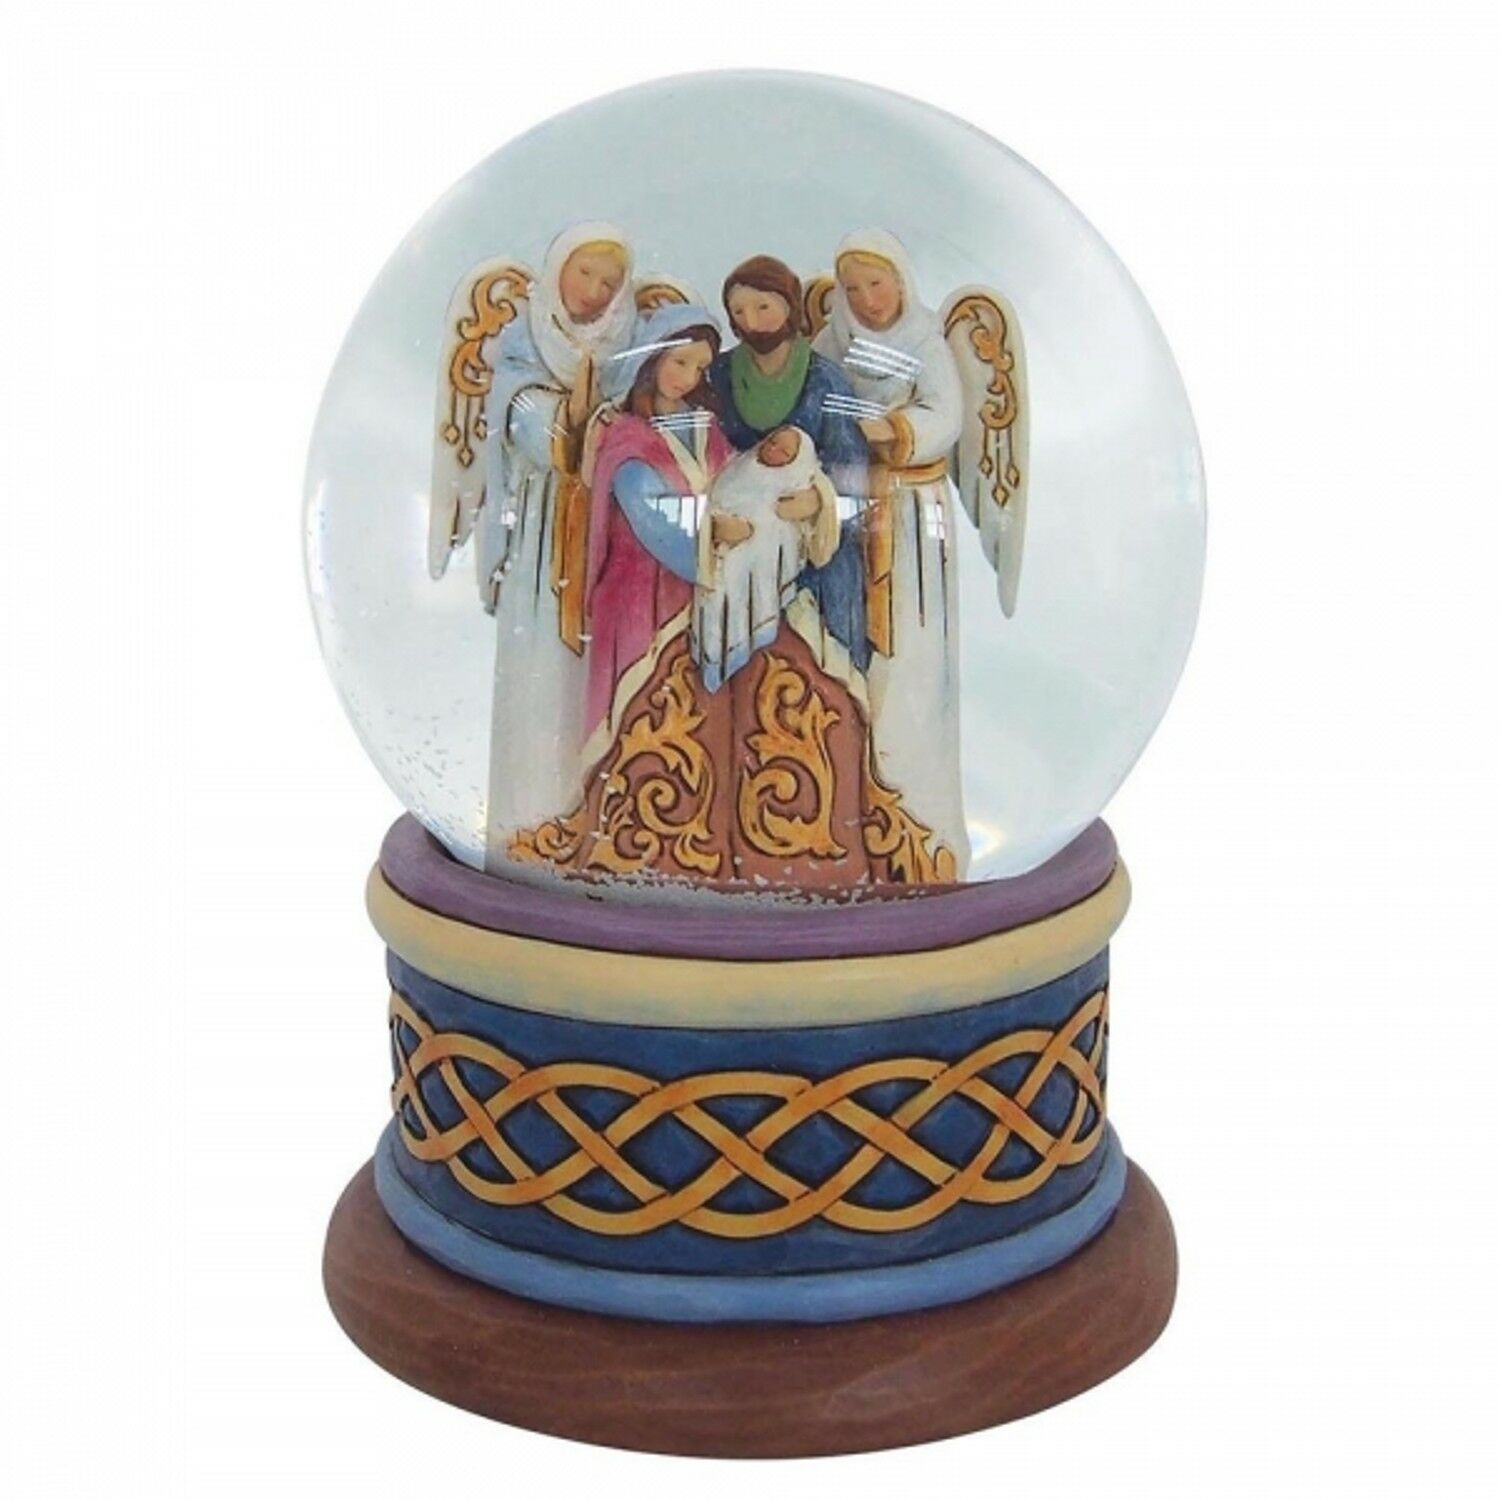 HEARTWOOD CREEK Nativity Schneekugel 4058801